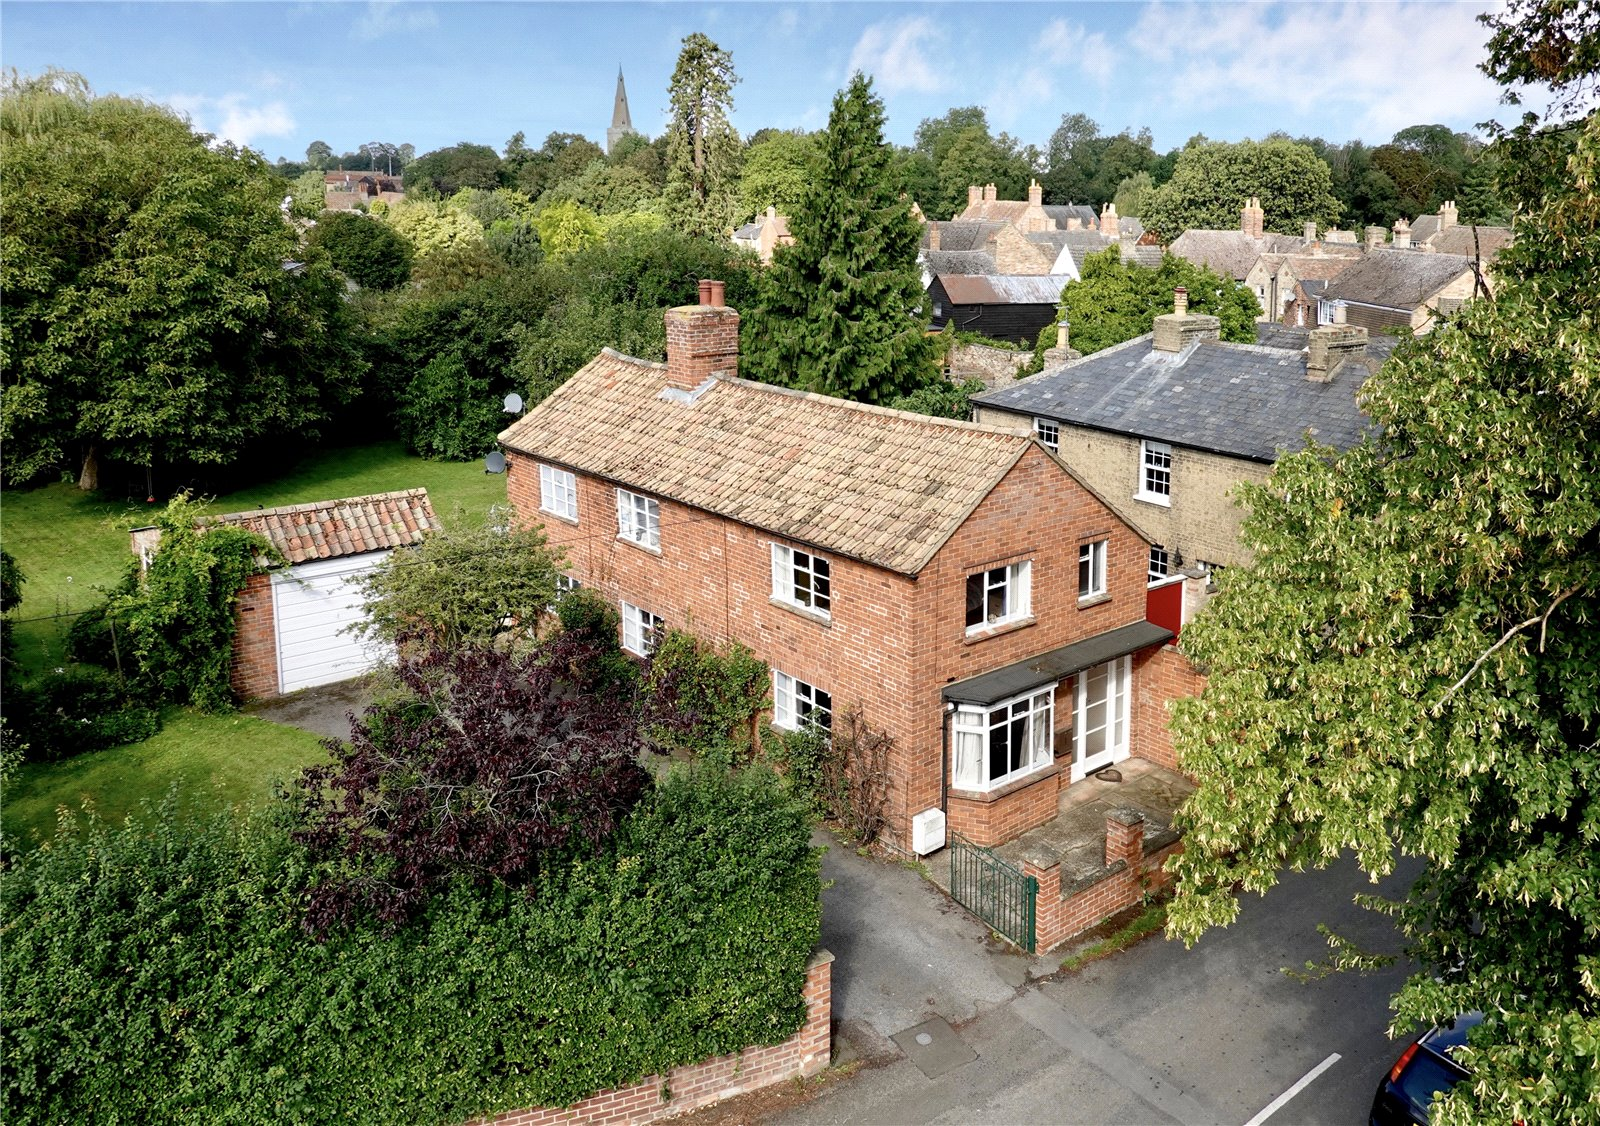 4 bed house for sale in Buckden - Property Image 1